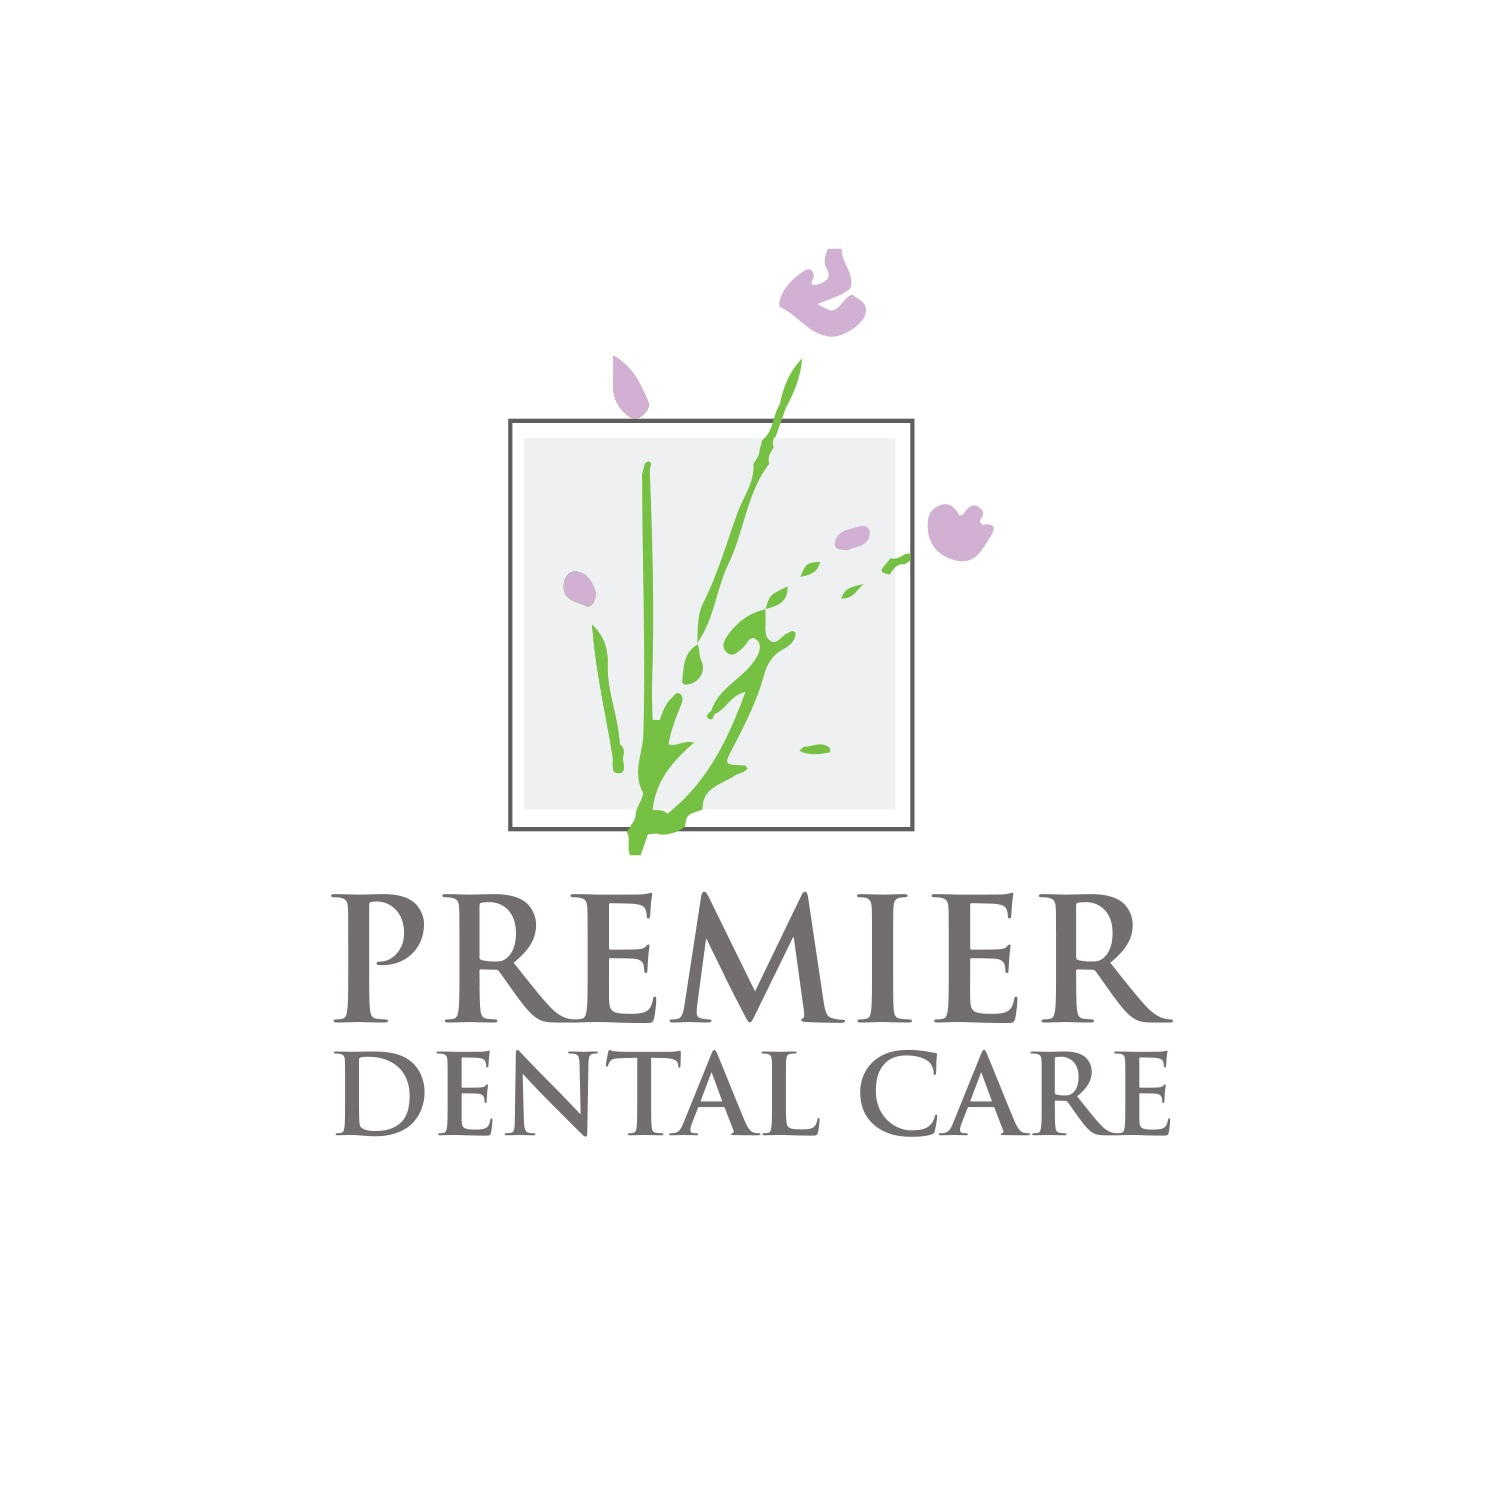 Premier Dental Care image